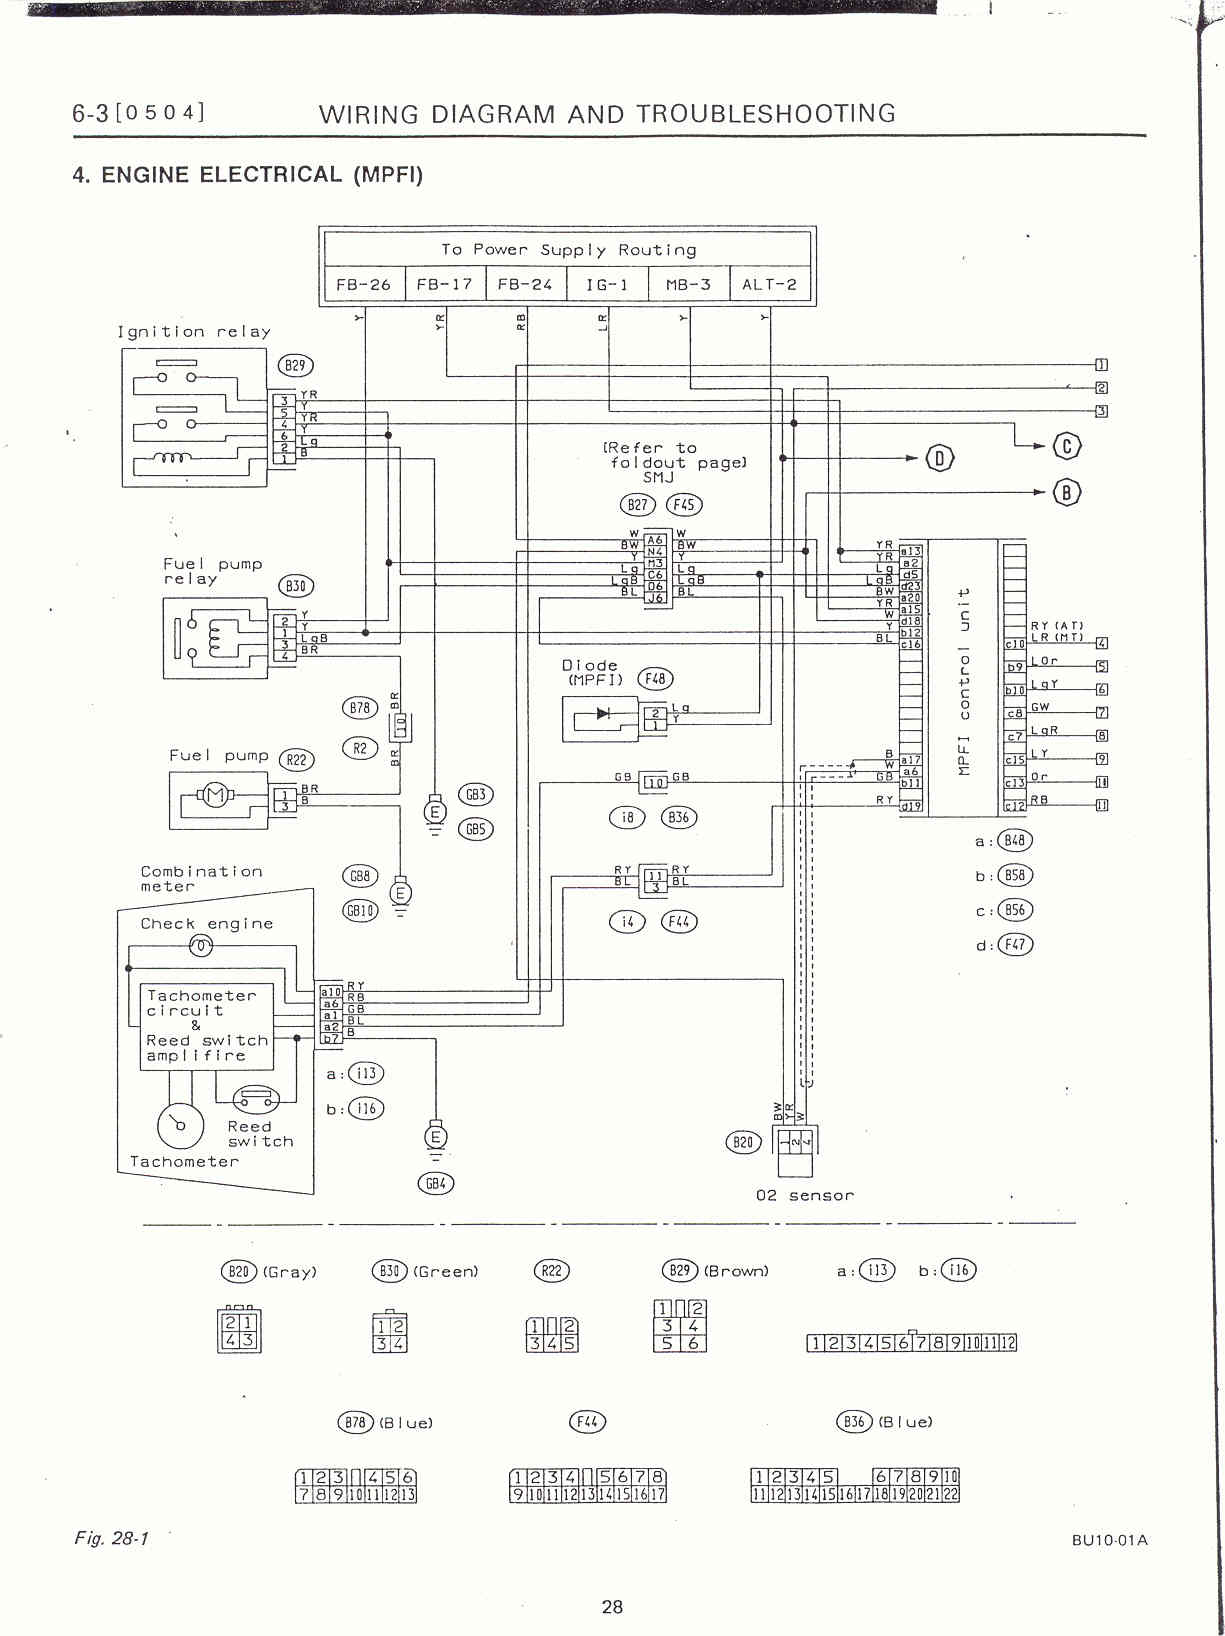 1998 Lincoln Continental Spark Plug Diagram Starting Know About 1999 Ford Explorer Wiring Contour Egr Valve Location Free Engine